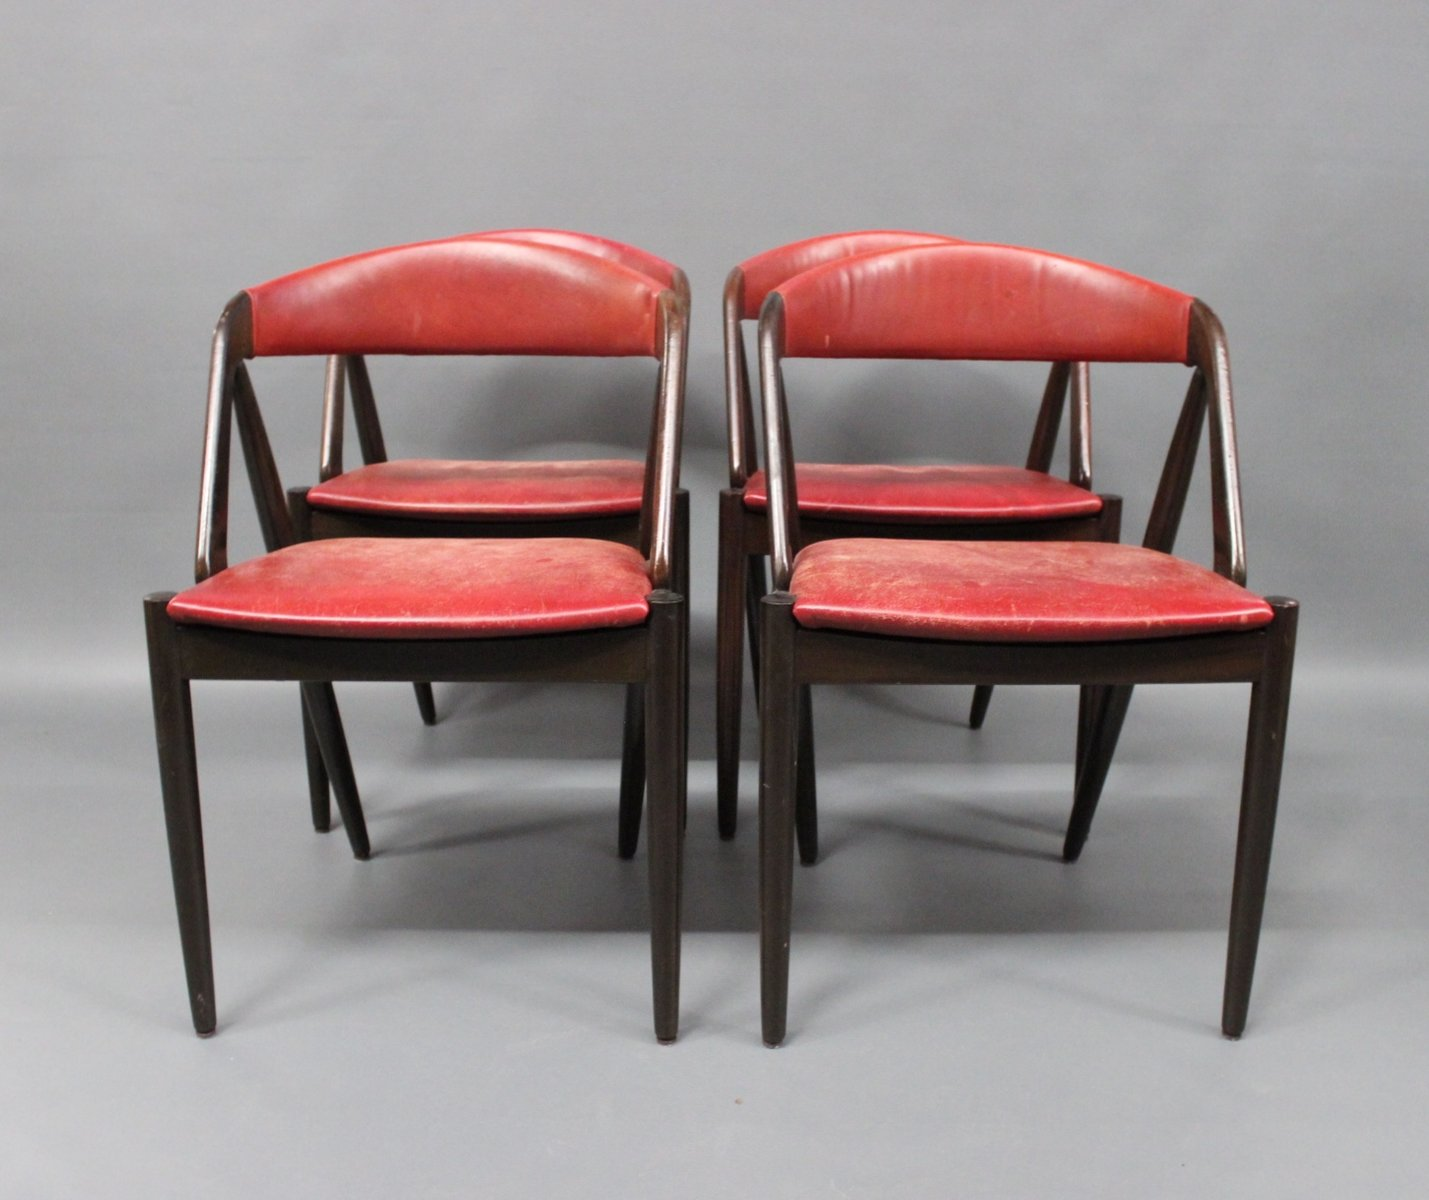 Vintage Dining Room Chairs: Vintage Model 31 Dining Room Chairs By Kai Kristiansen For